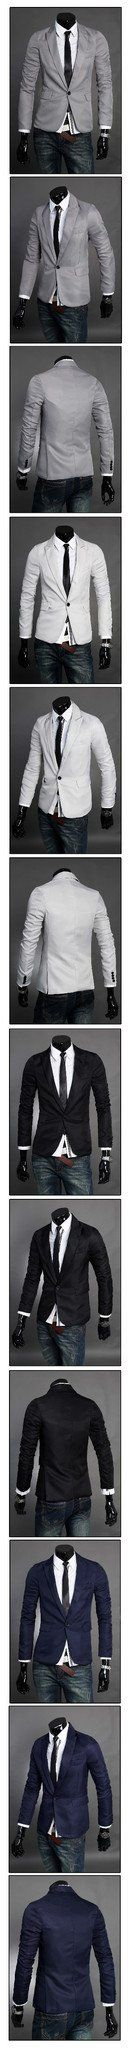 Men's Solid Color Suit Jacket - TrendSettingFashions   - 2